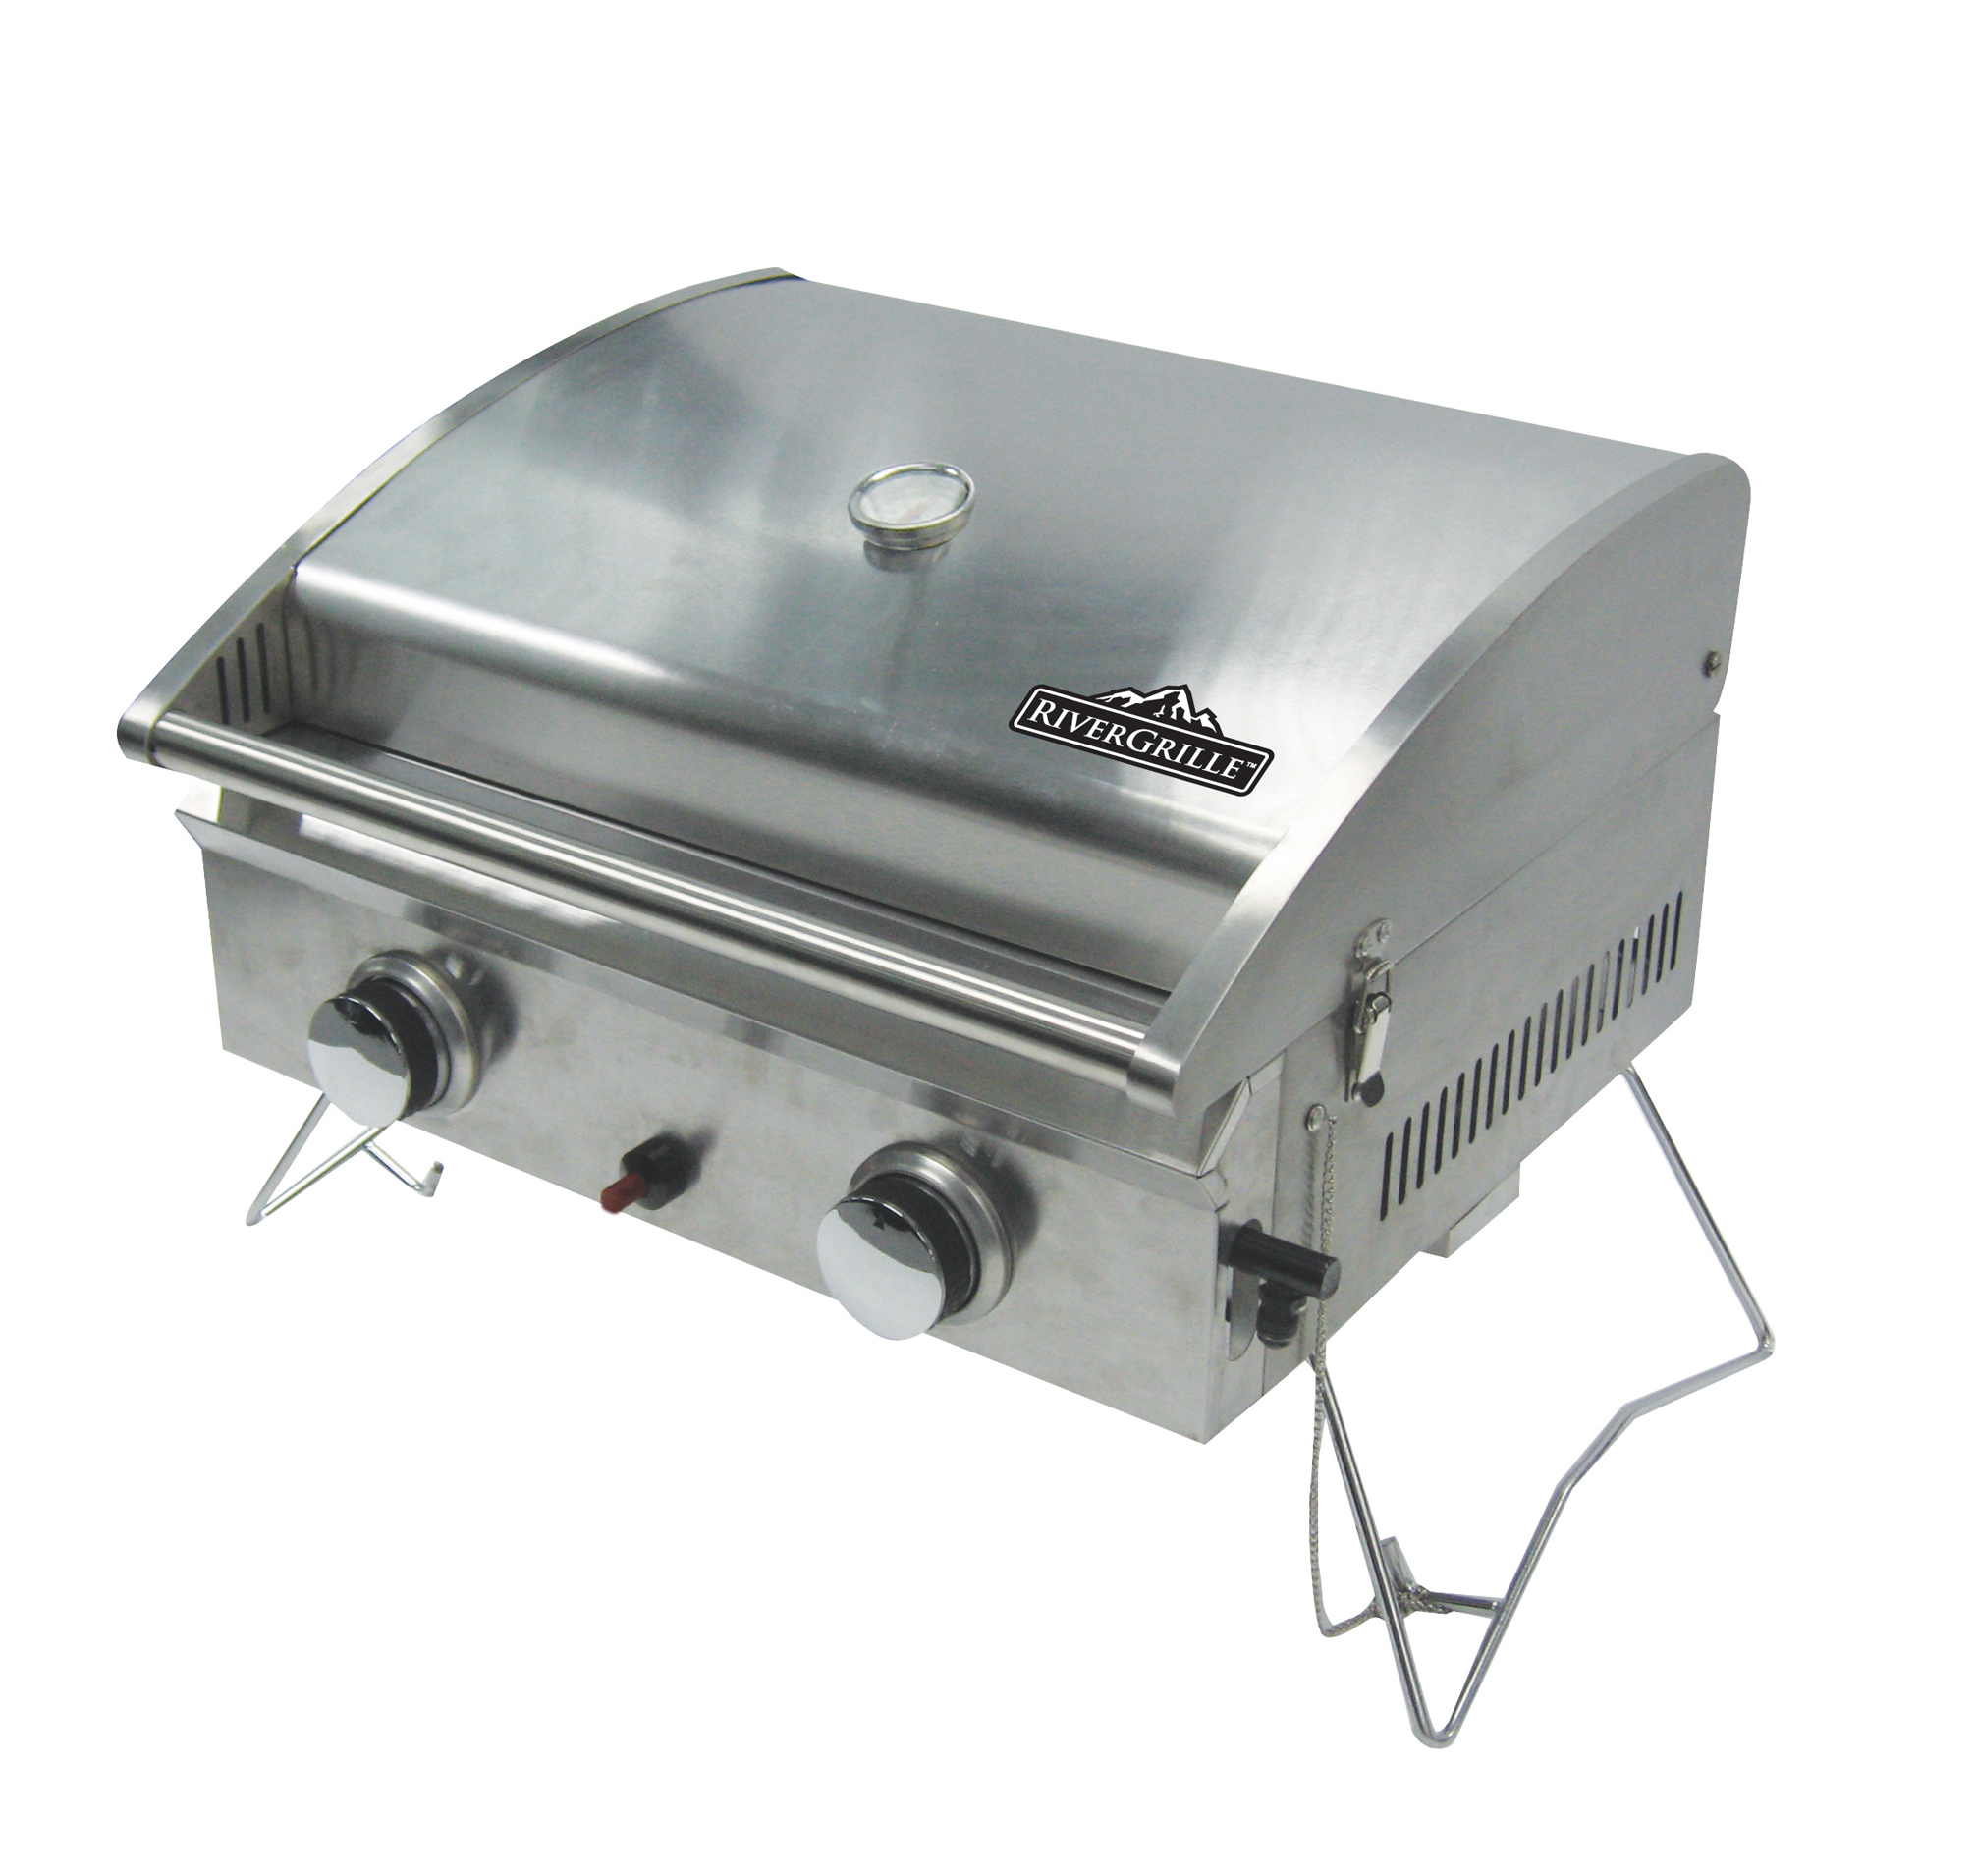 Deluxe 2 Burner Stainless Steel Tabletop Gas Grill